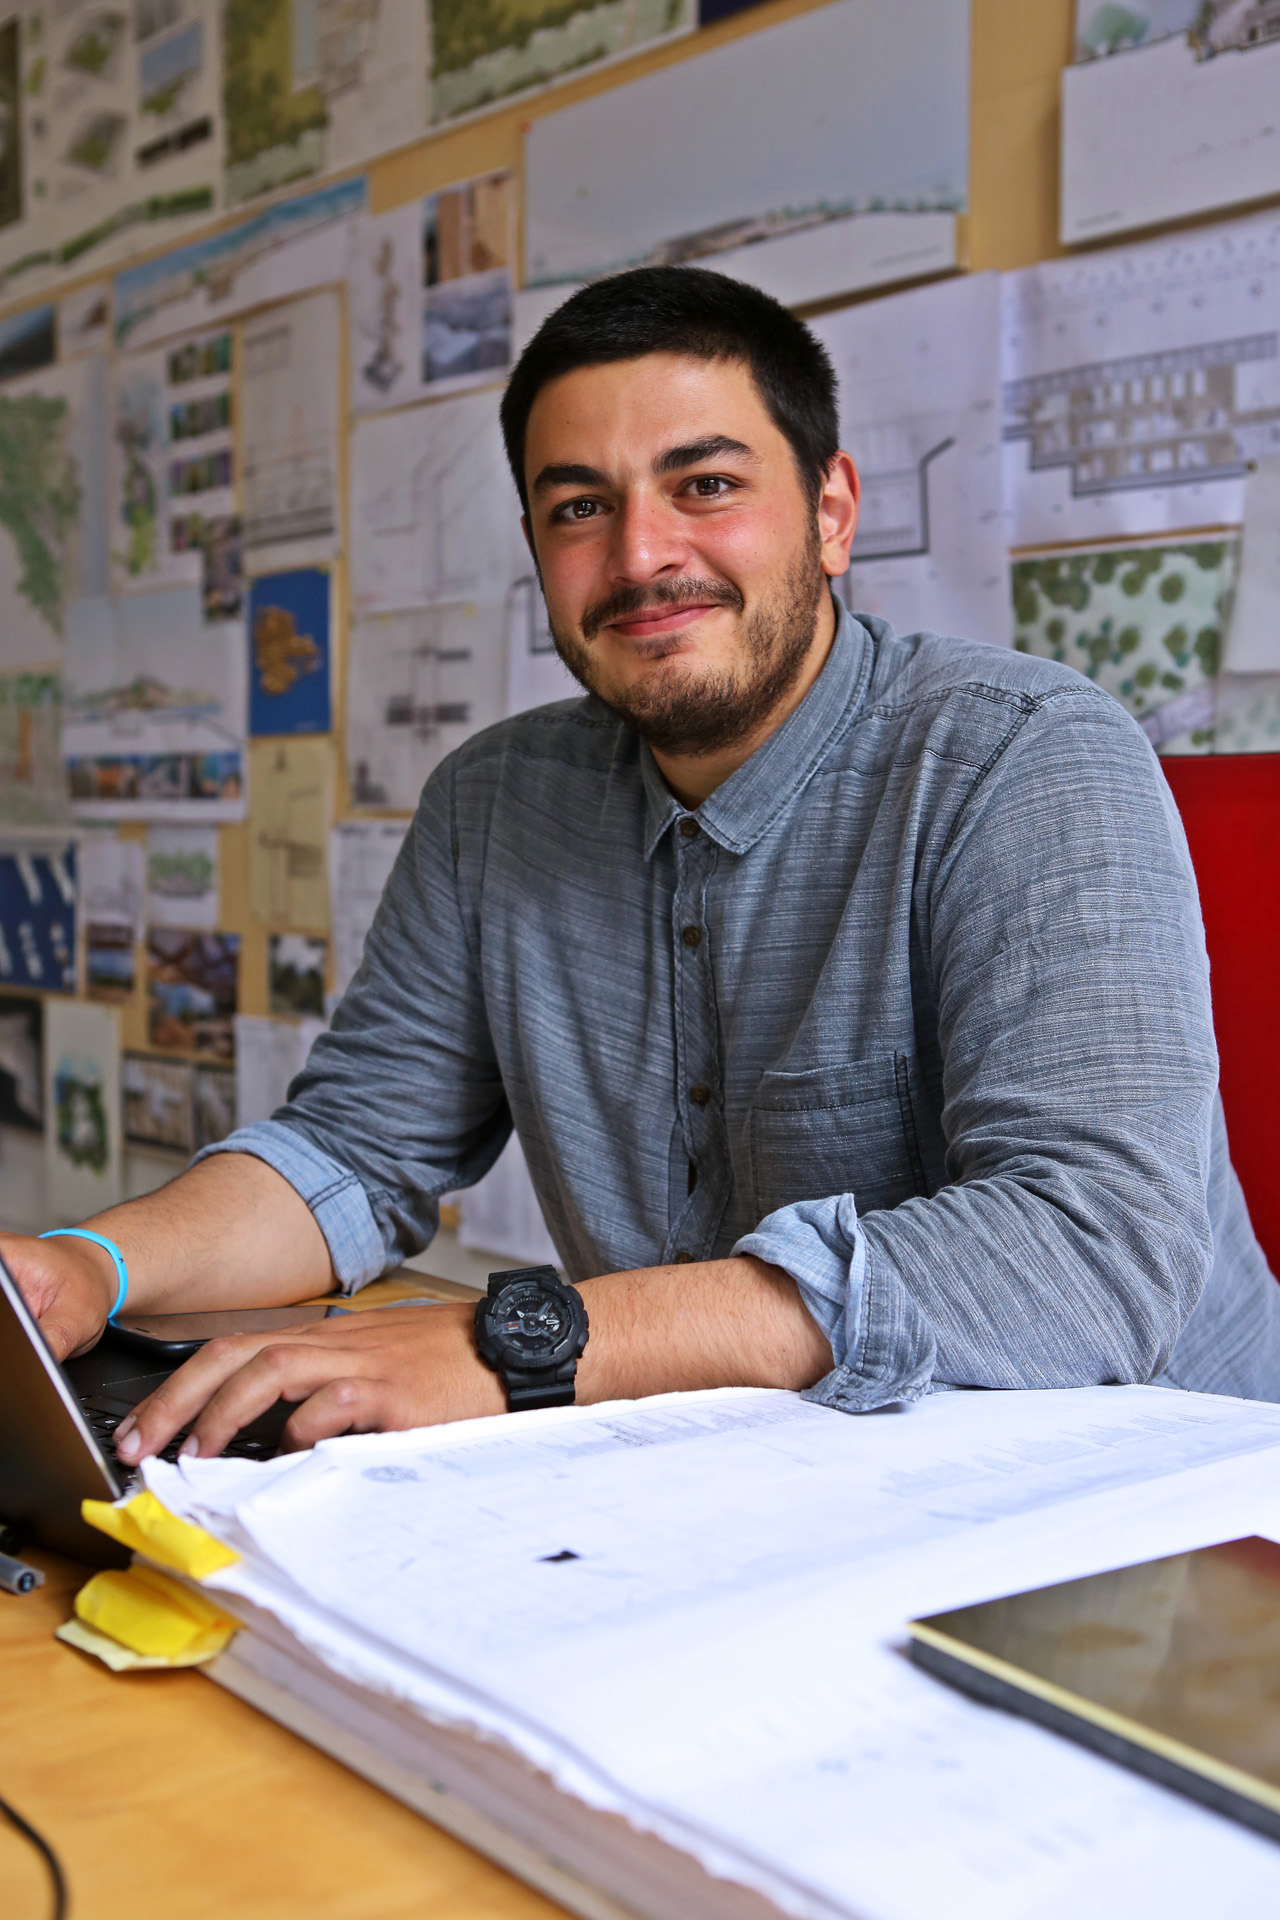 Tanju Coskun graduated from Istanbul Technical University. He carried out his first working experiences as an architect working for Coop HimmelBlau in Vienna and Eric Owen Moss office in Los Angeles.